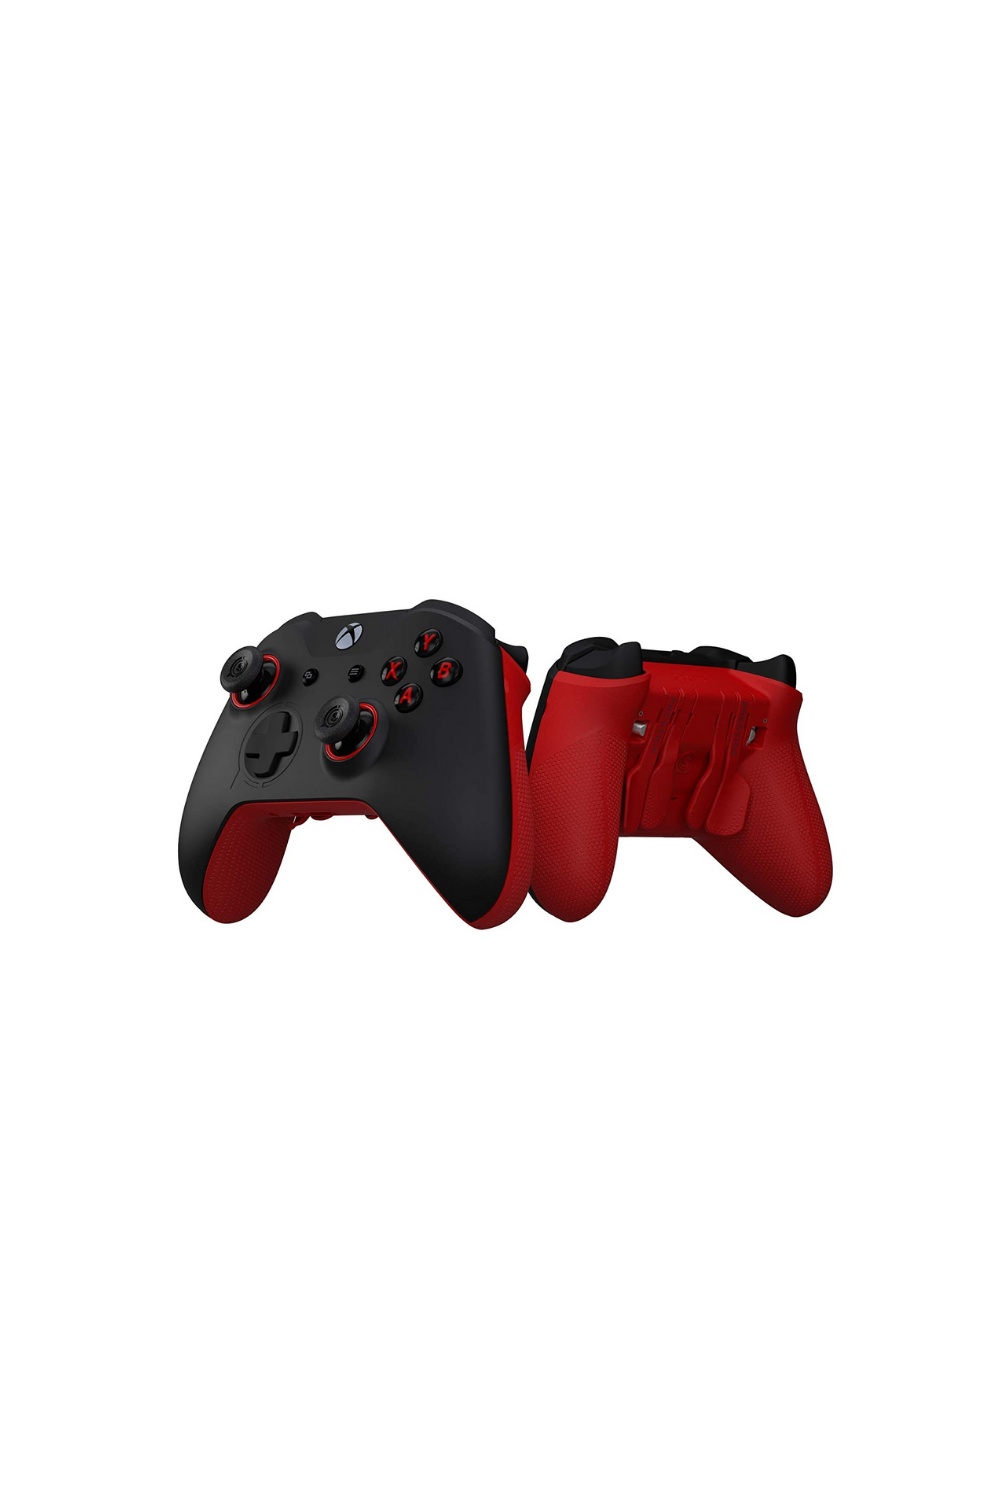 Scuf Prestige Wireless Custom Performance Controller For Xbox One Xbox Series X S Pc Mobile Gaming Accessories Xbox One Black And Red